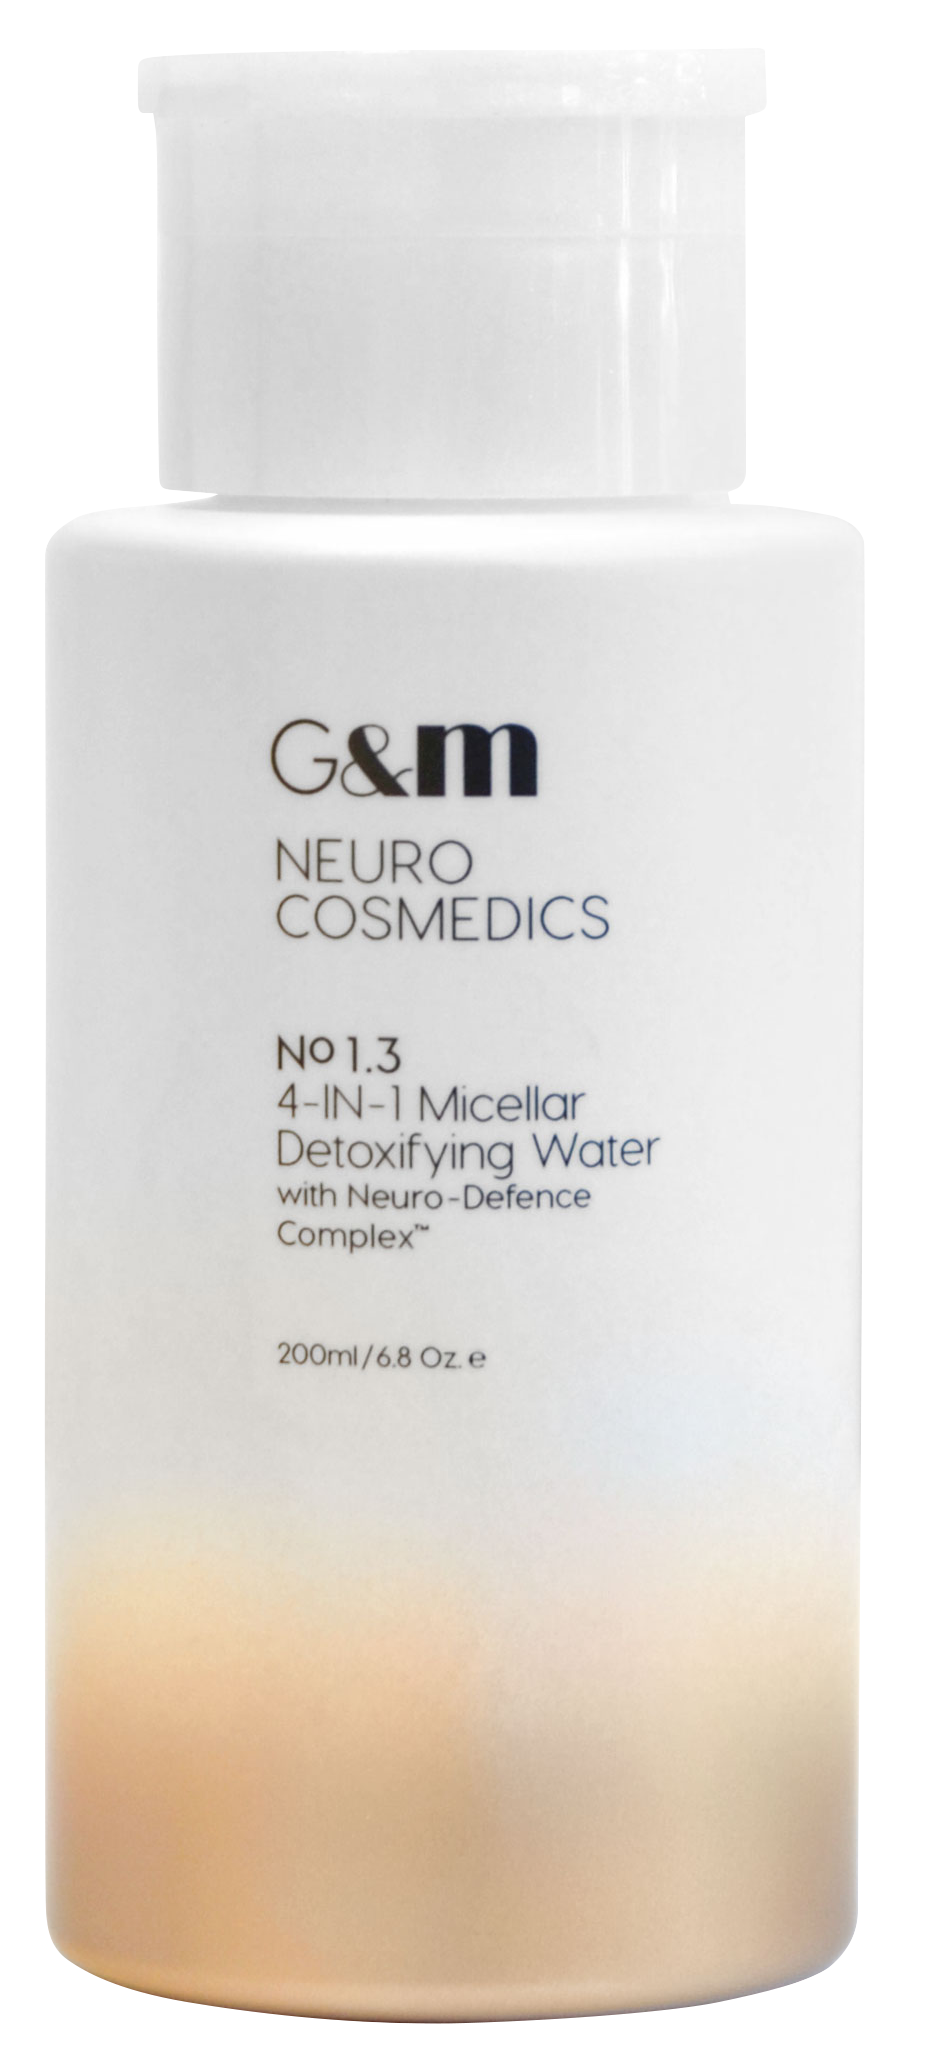 4-IN-1 Micellar Detoxifying Water